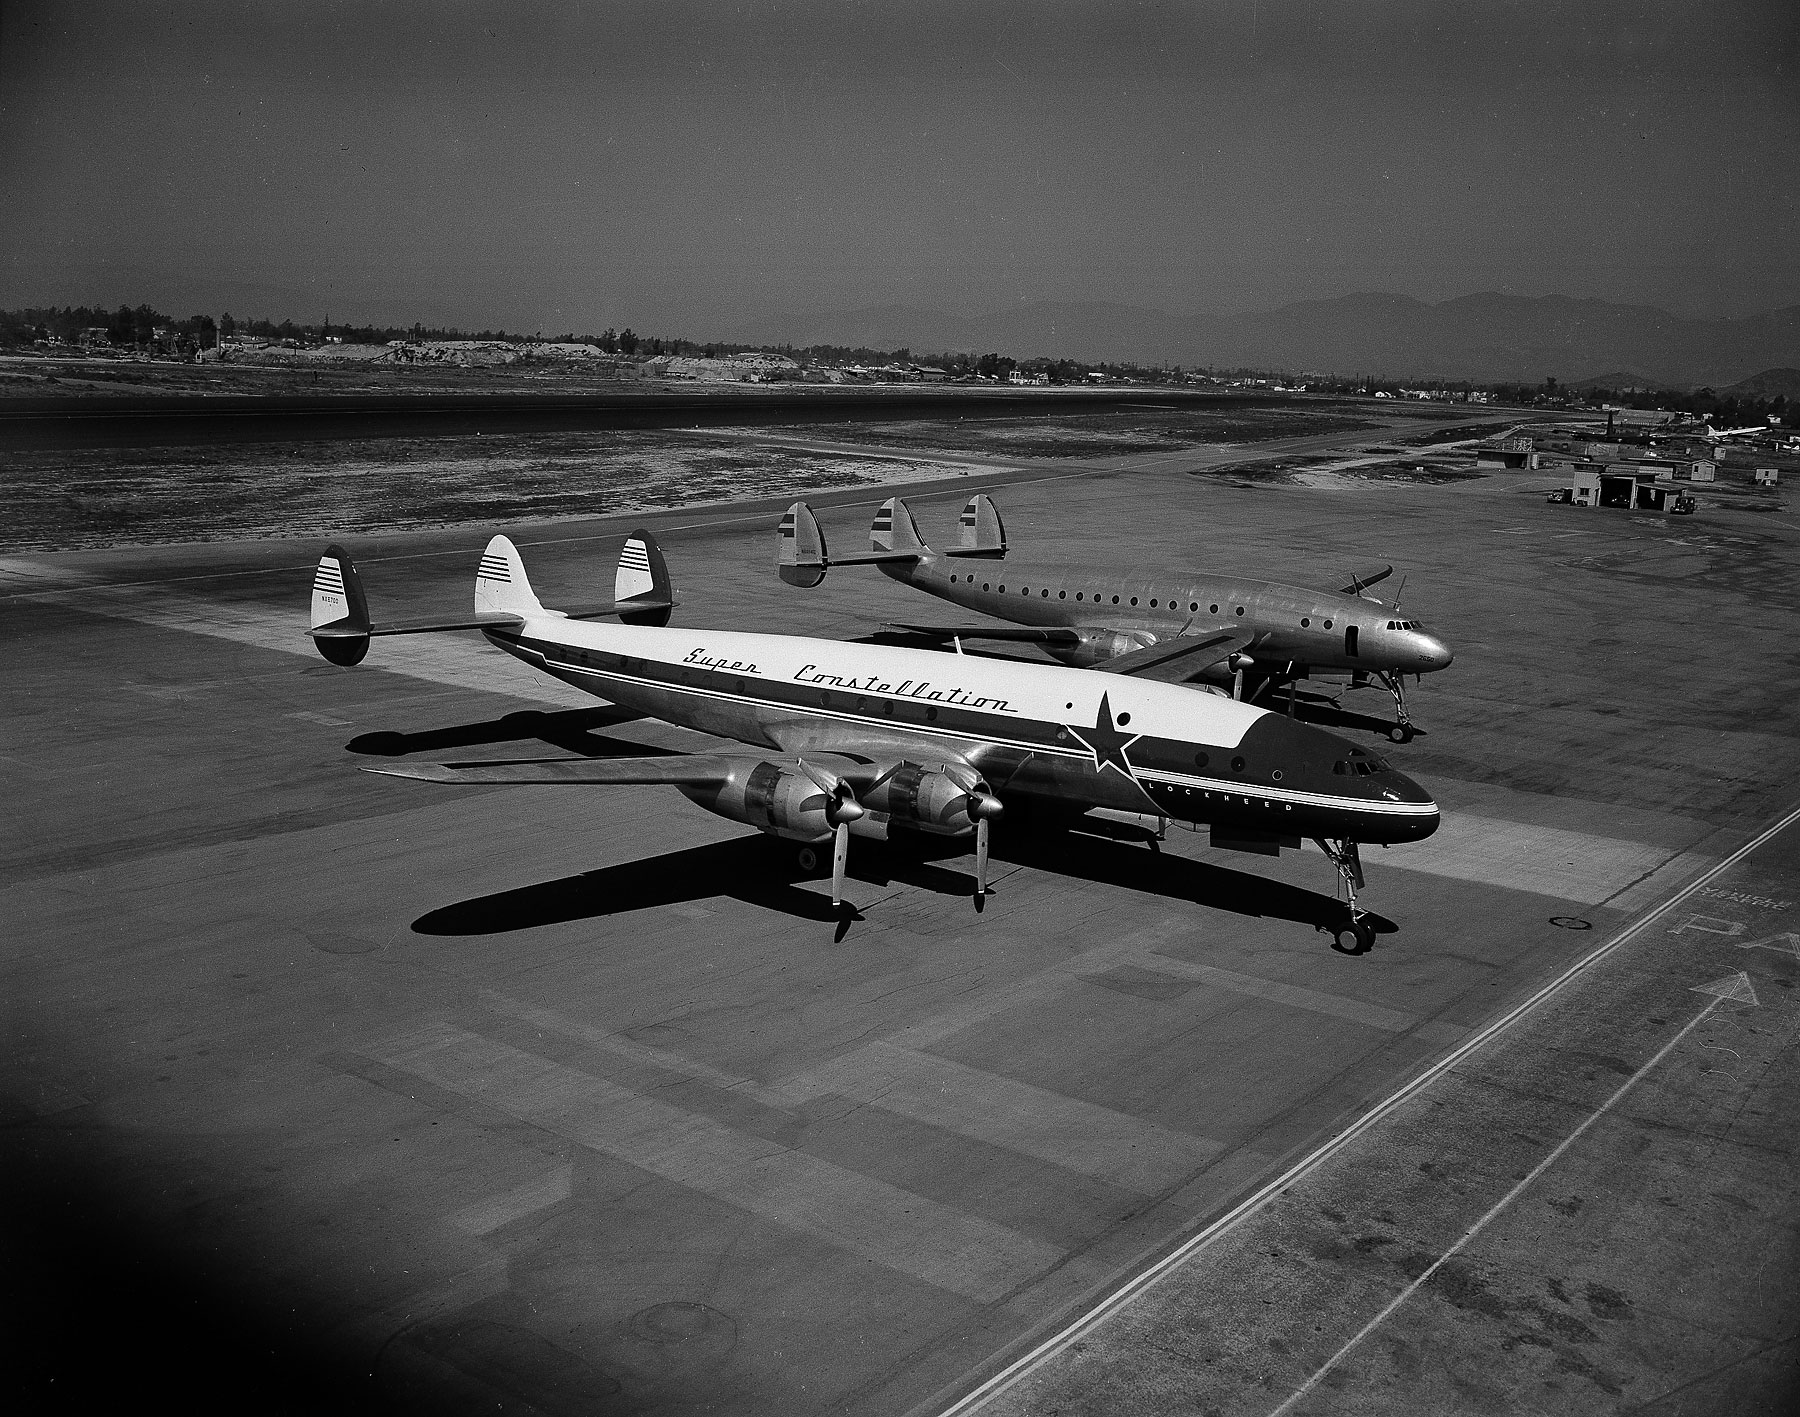 An example of a Lockheed Super Constellation, the same type of plane as Flying Tiger Line Flight 739.